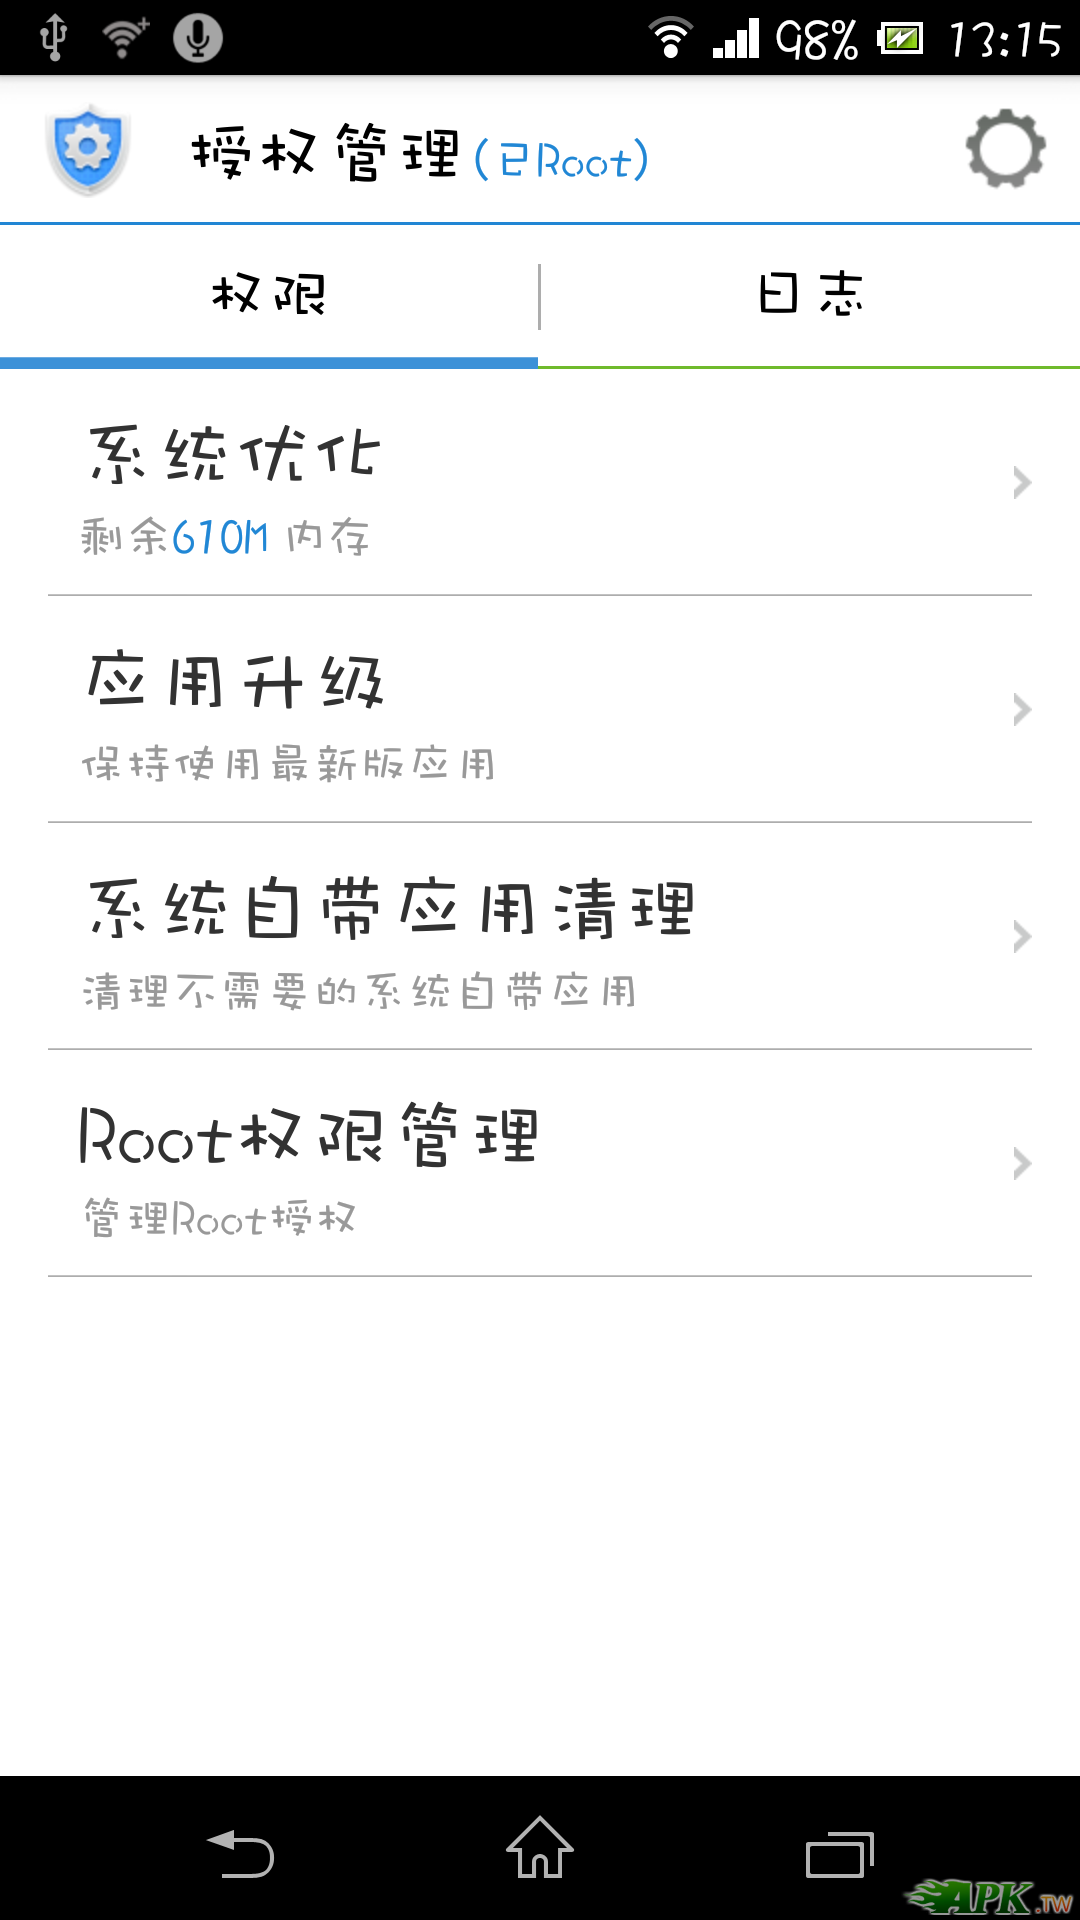 Screenshot_2013-08-28-13-15-48.png